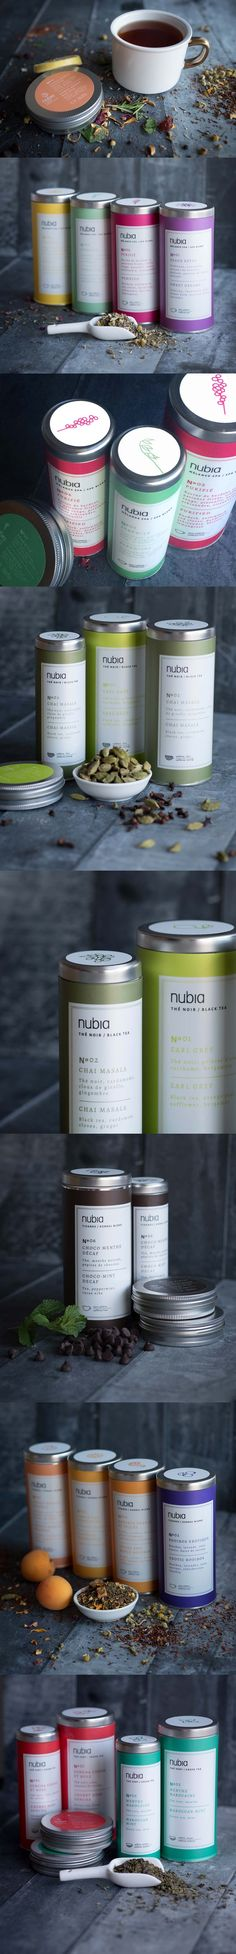 Nubi Spa Tea #Packaging                                                                                                                                                      Más